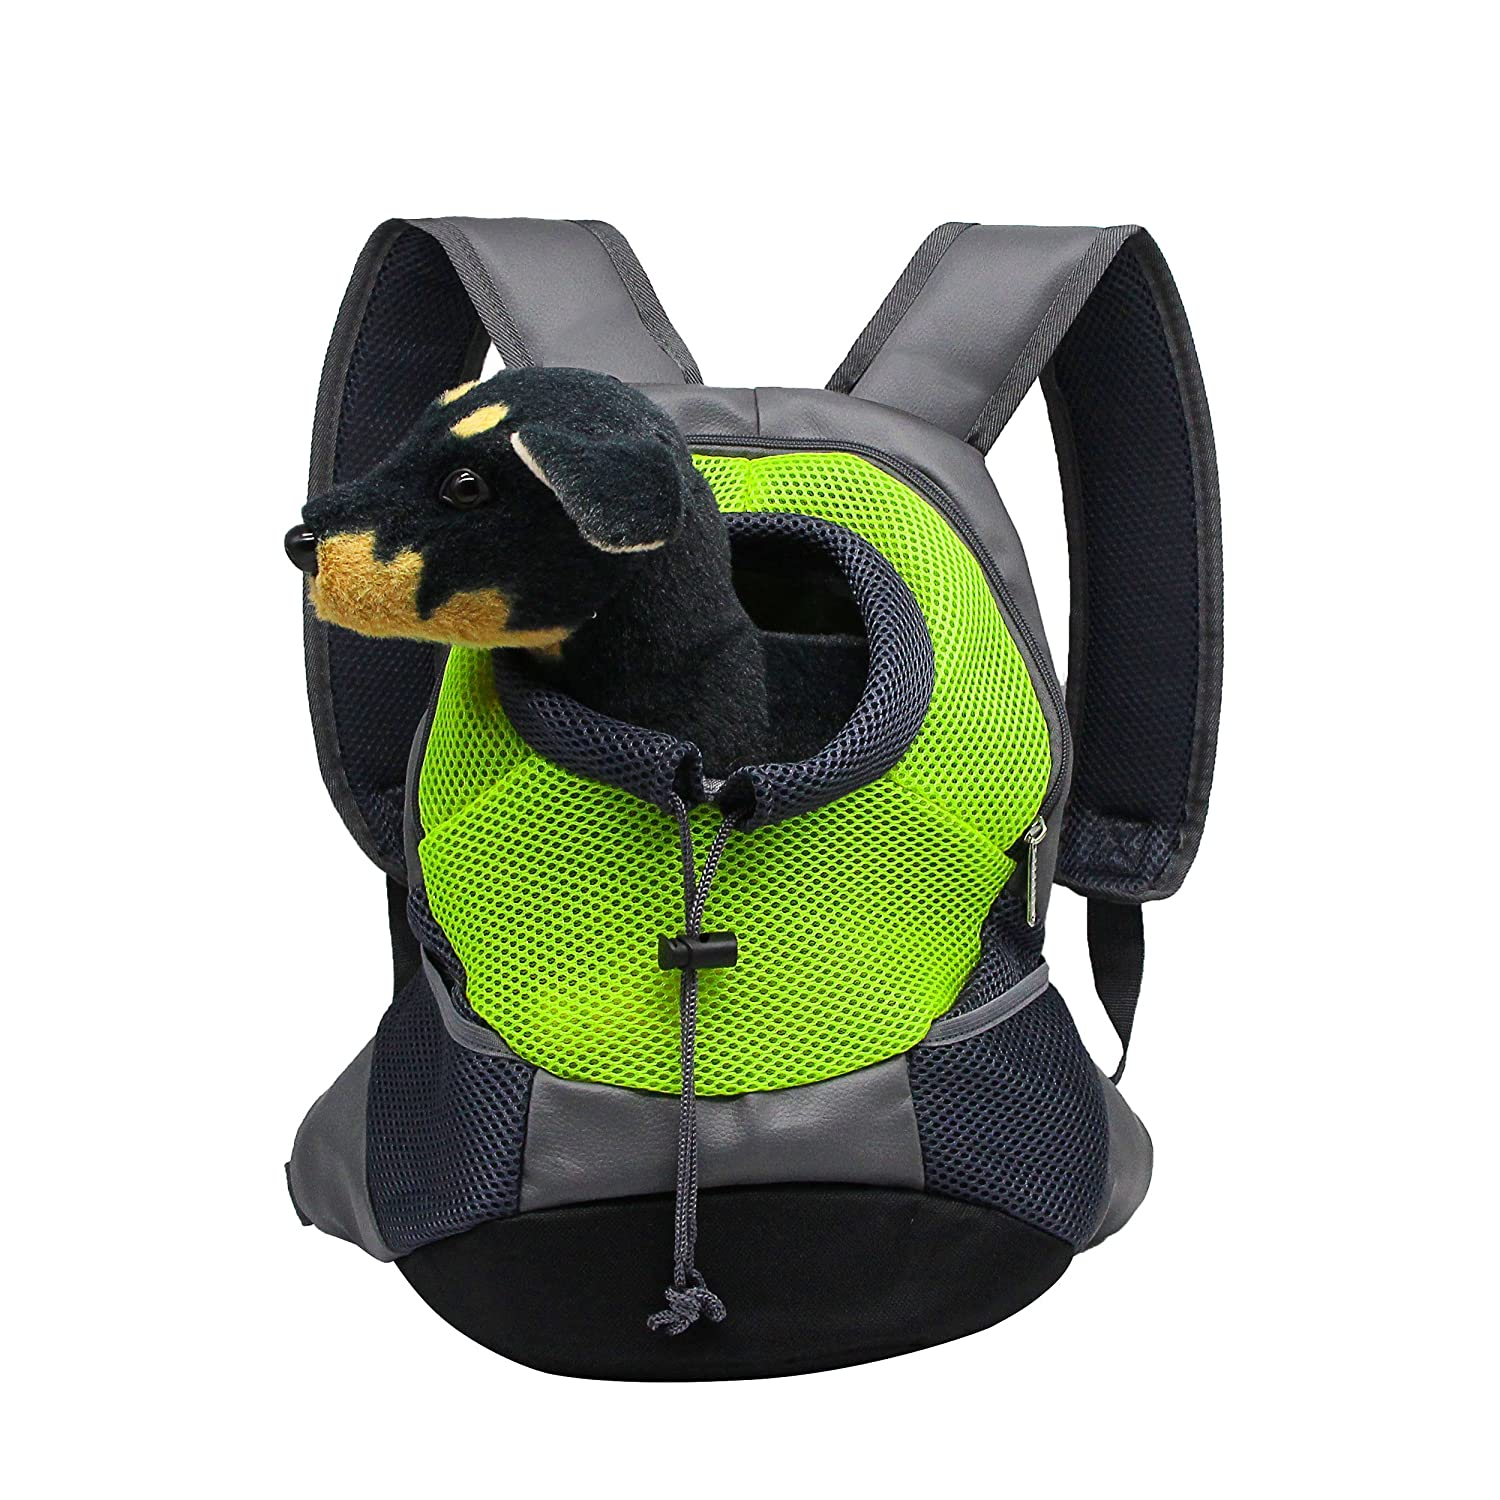 Light Green S Light Green S YAODHAOD Dog Cat Pet Carrier Backpack Pet Dog Cat Portable Backpack, Breathable Mesh, Adjustable Filled Shoulder Front Bag for Bicycle Hiking Outdoor (S, Light Green)